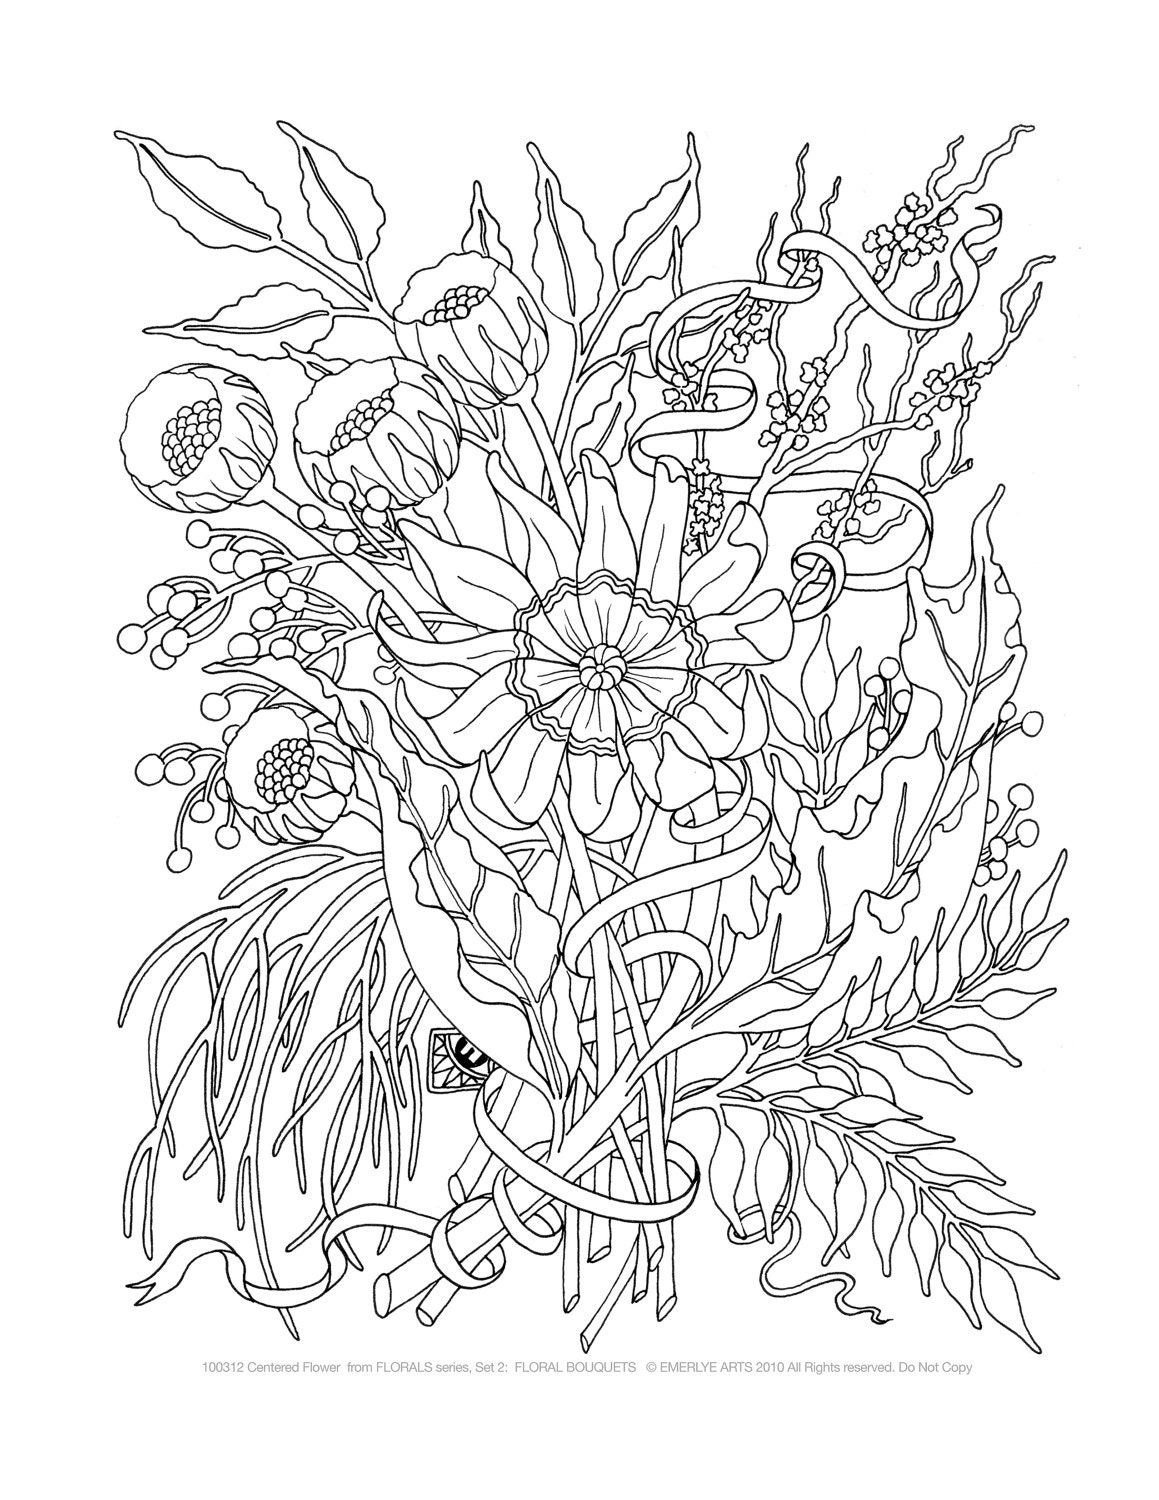 adults coloring book online : 48 Best Images About Adult Coloring Pages On Pinterest Coloring Adult Coloring Pages And Colouring Pages